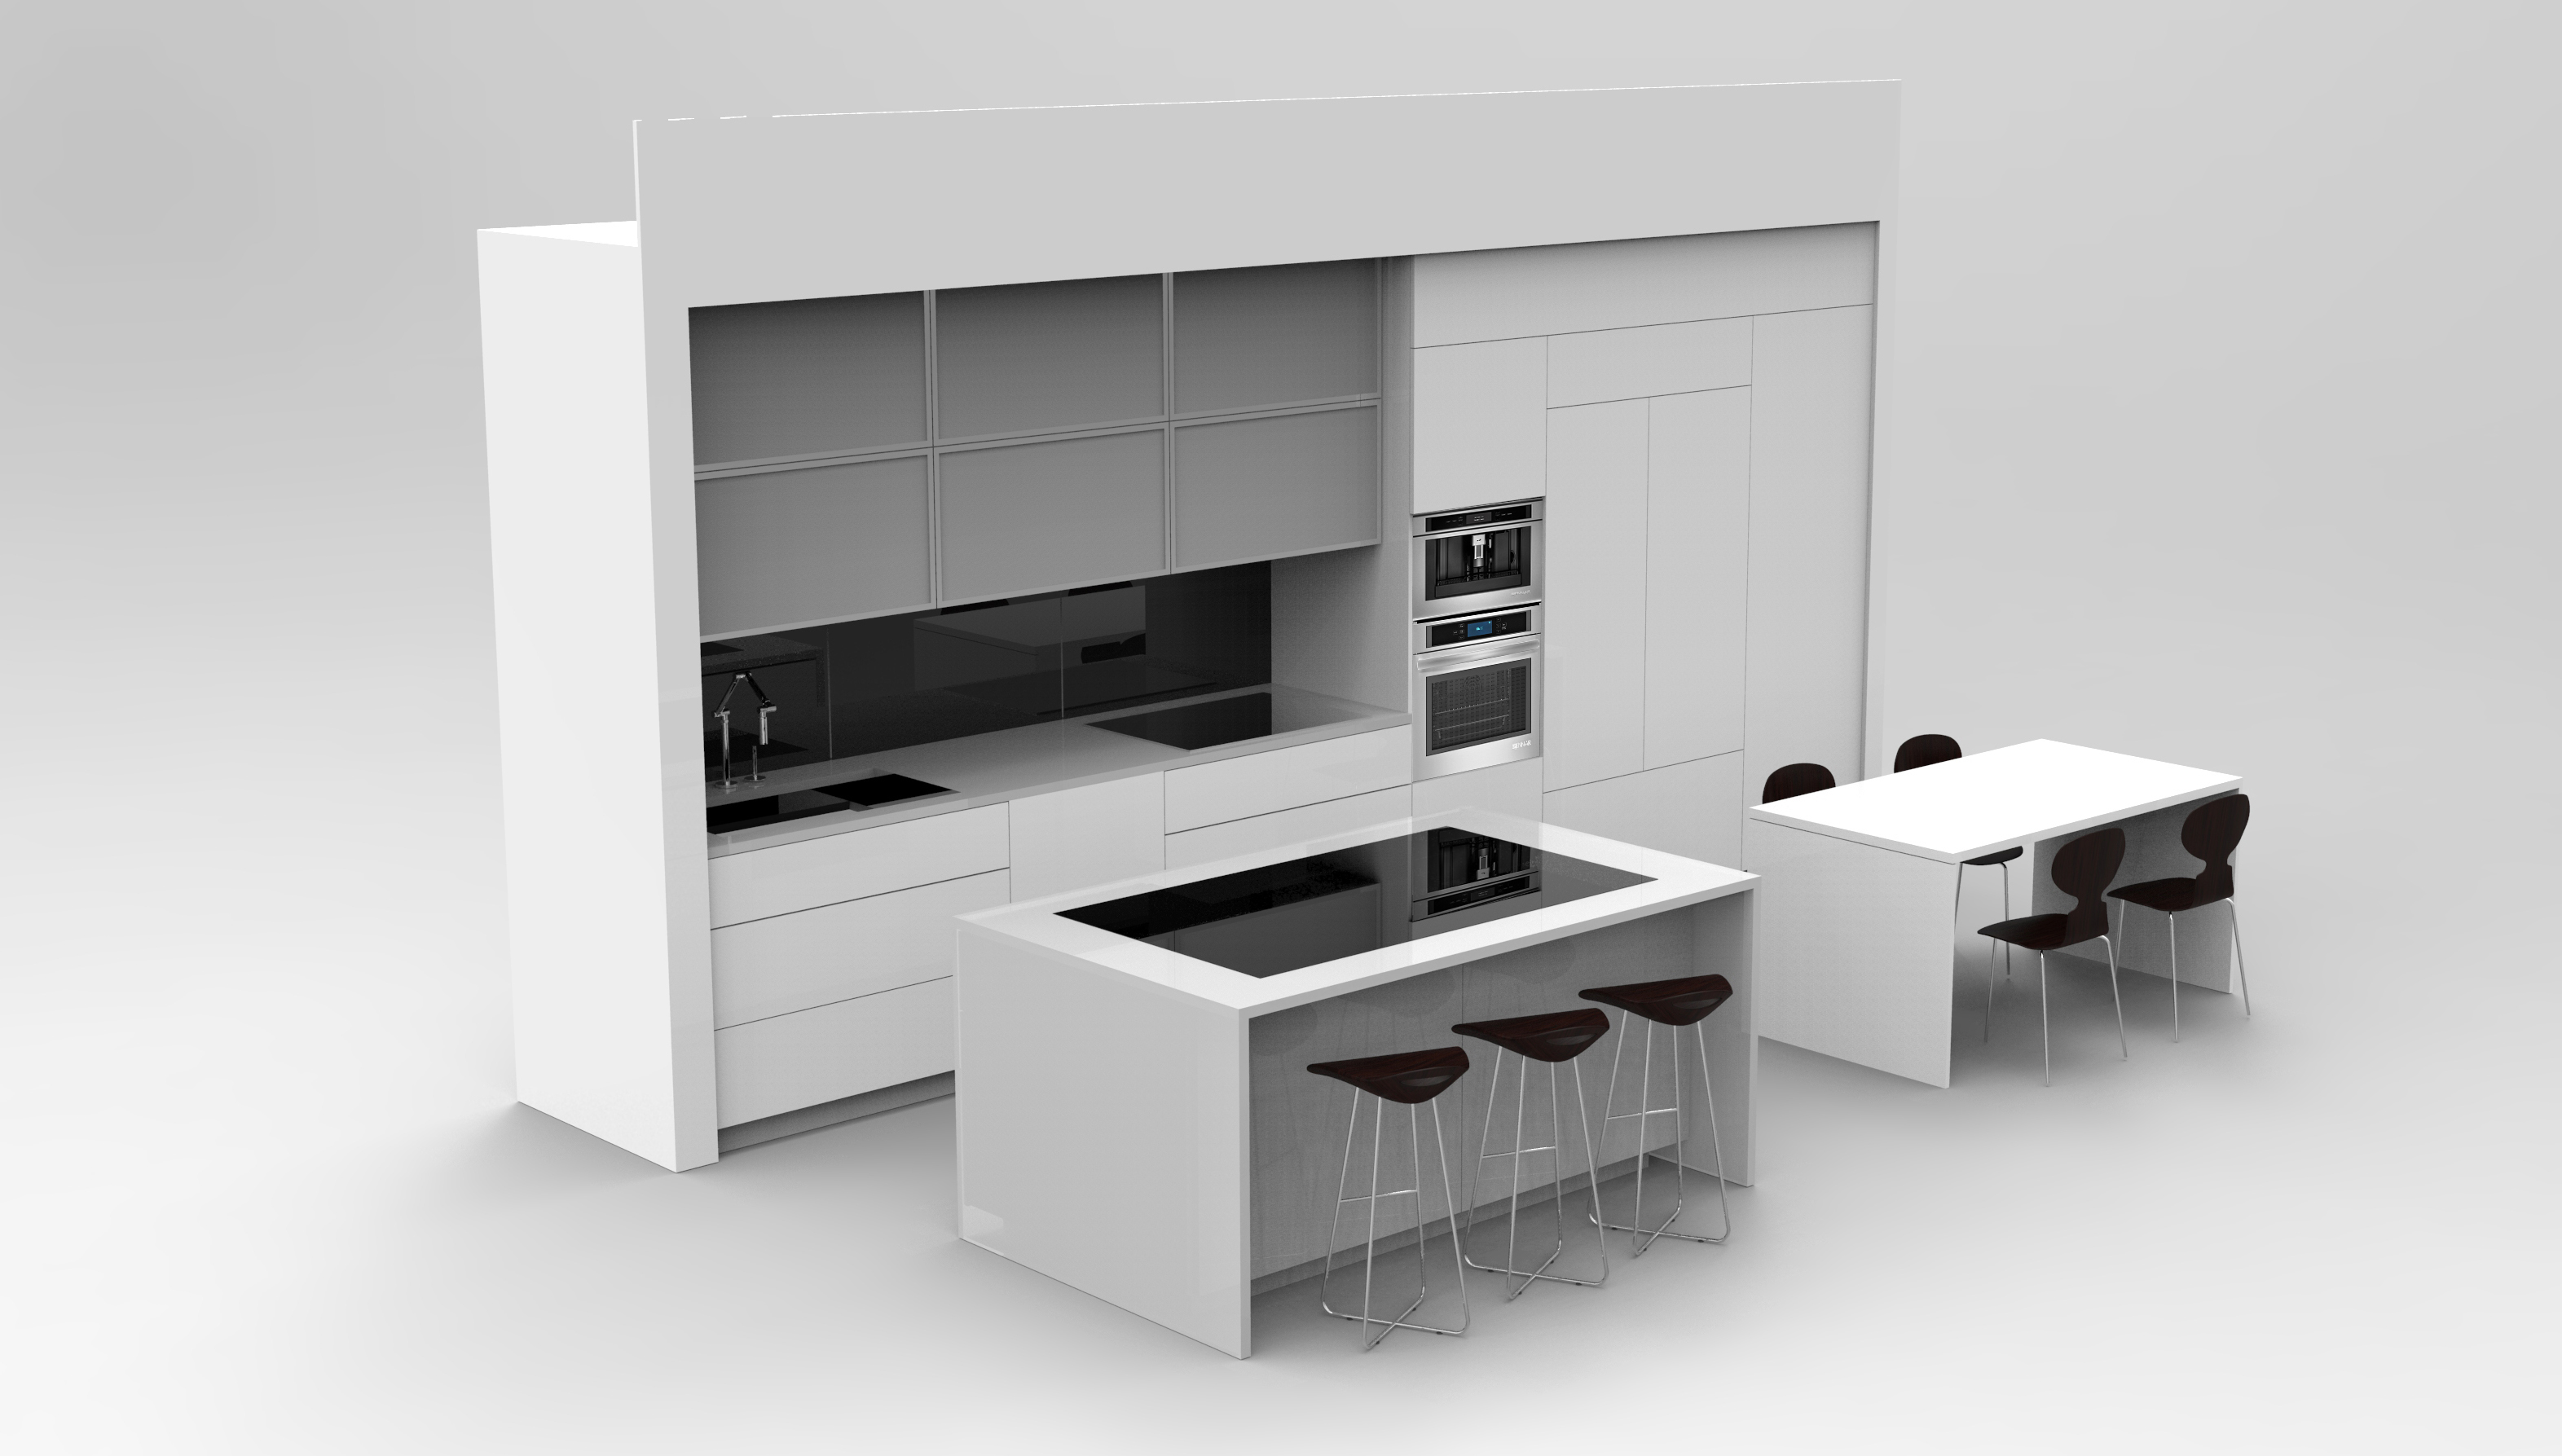 A rendering of a white, modular kitchen.